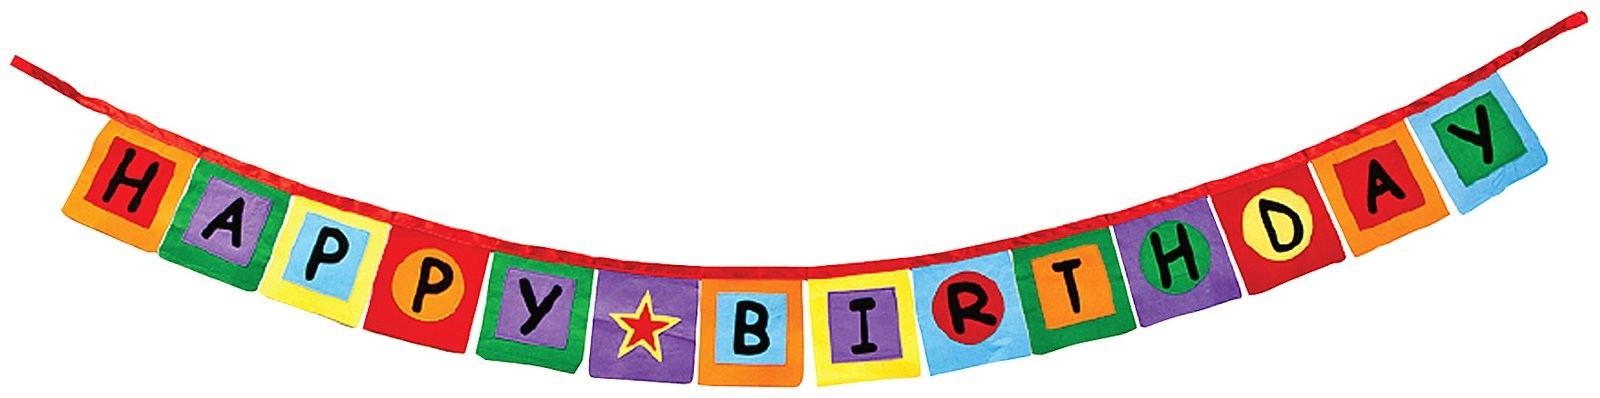 Banner clipart happy birthday. Clip art animehana com